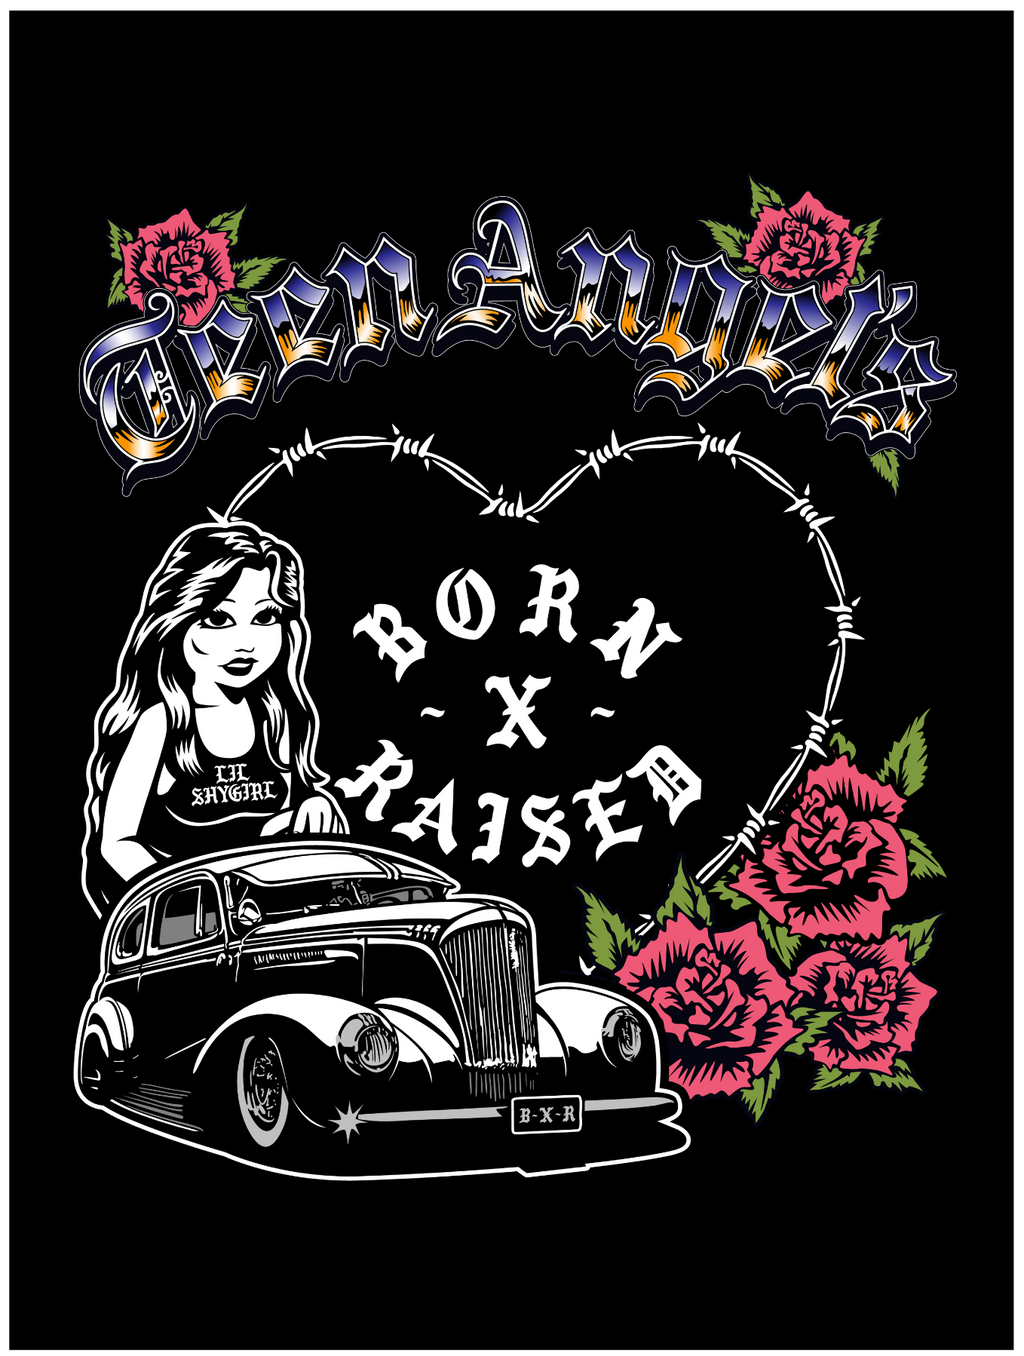 BORN X RAISED + TEEN ANGELS SHY GIRL PRINT